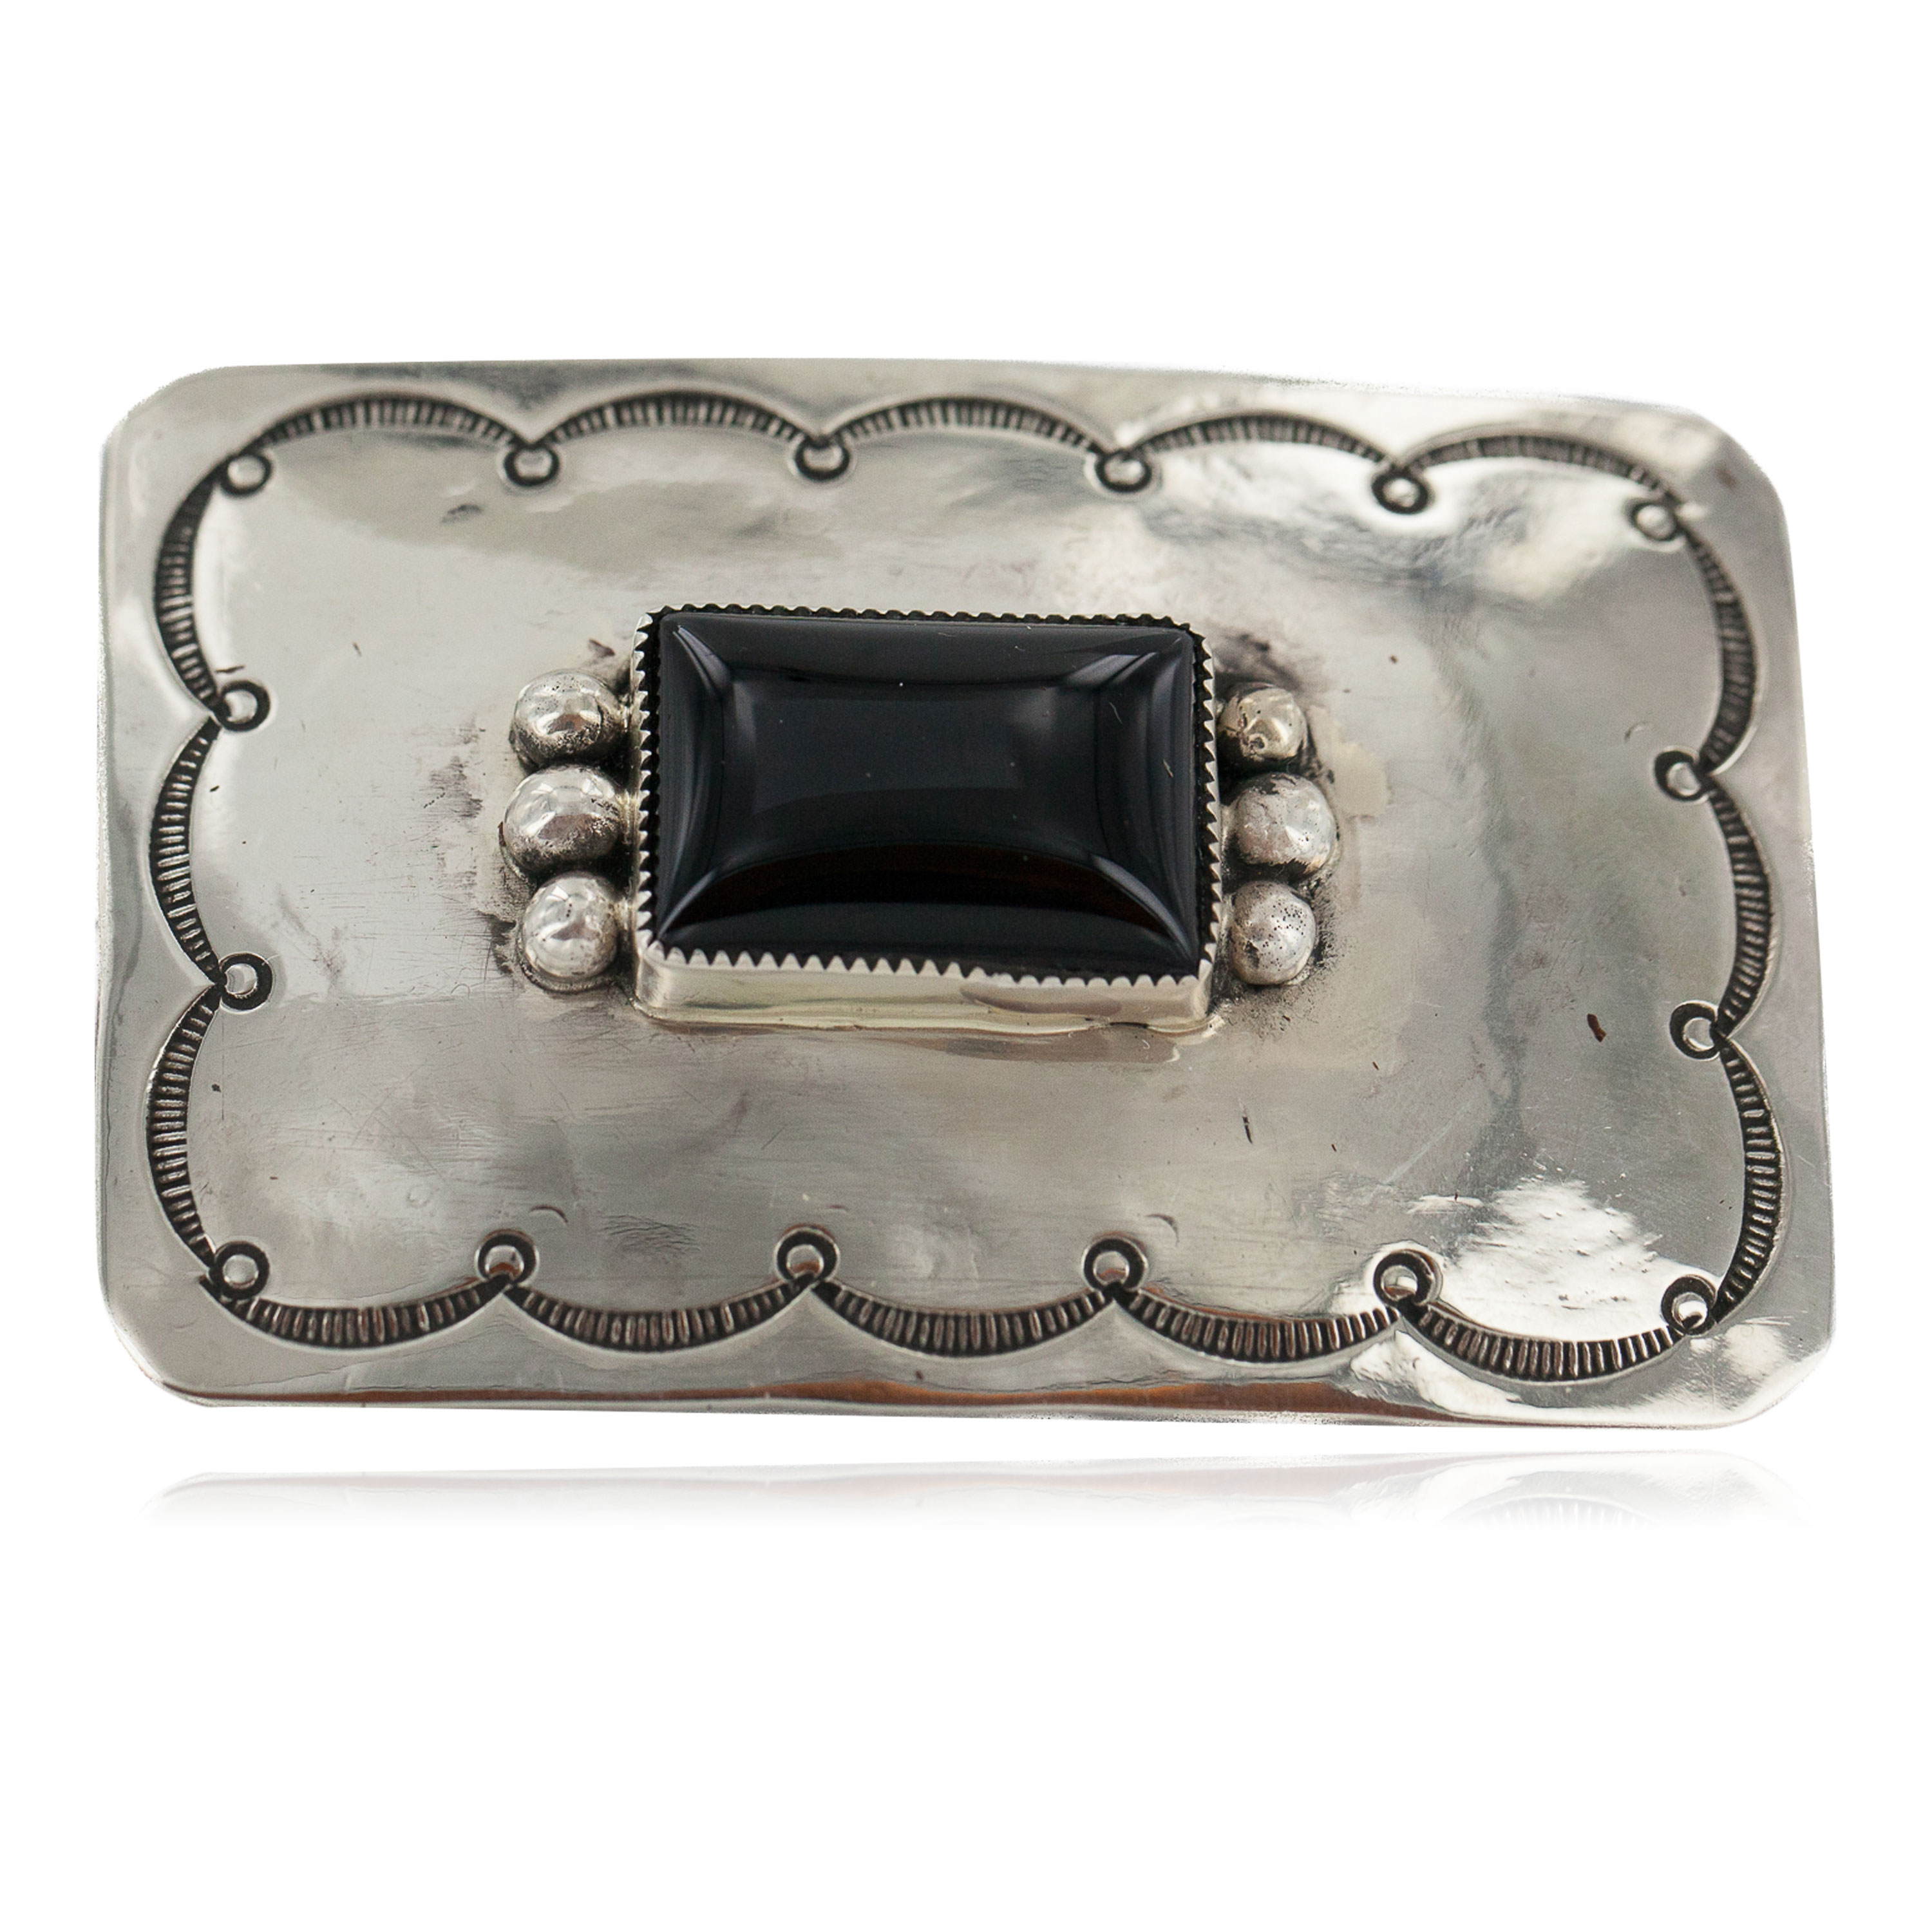 Certified Authentic Handmade Navajo Nickel Natural Black Onyx Native American Buckle 1219-2 All Products NB160406090958 1219-2 (by LomaSiiva)